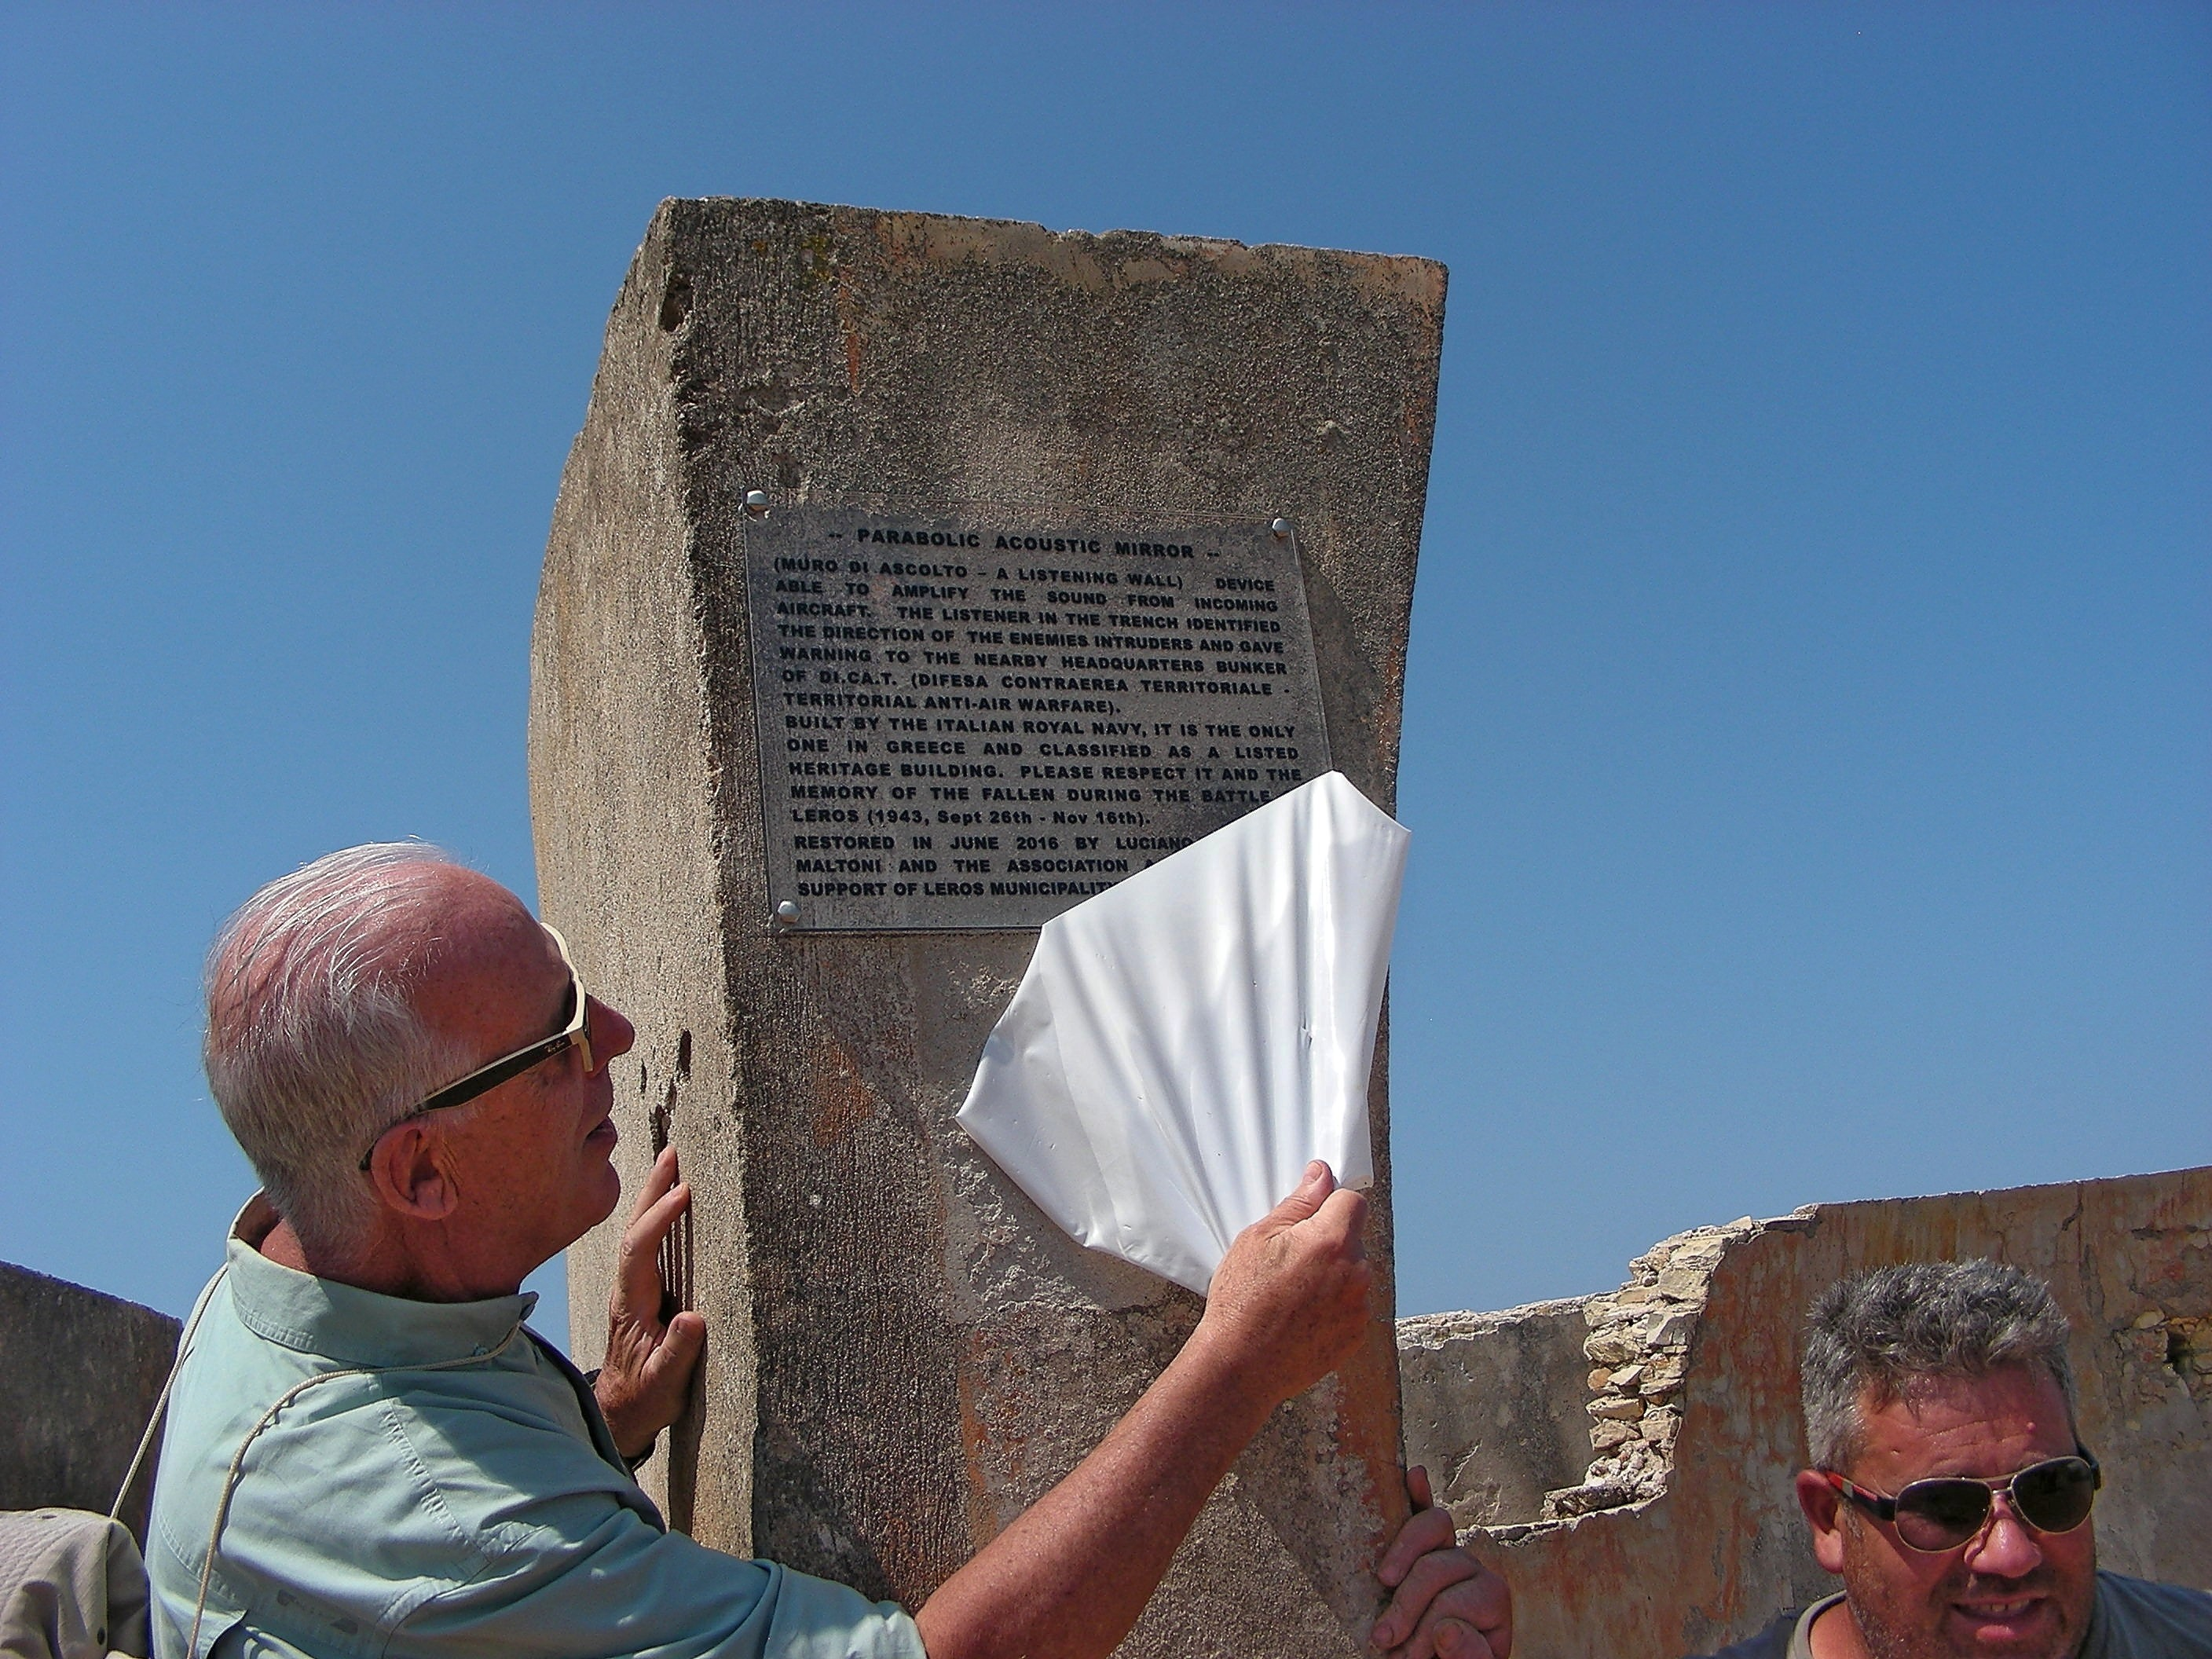 Luciano Alberghini Maltoni uncovers the restoration plaque of the Listening Wall at Mount Patella, Leros Island